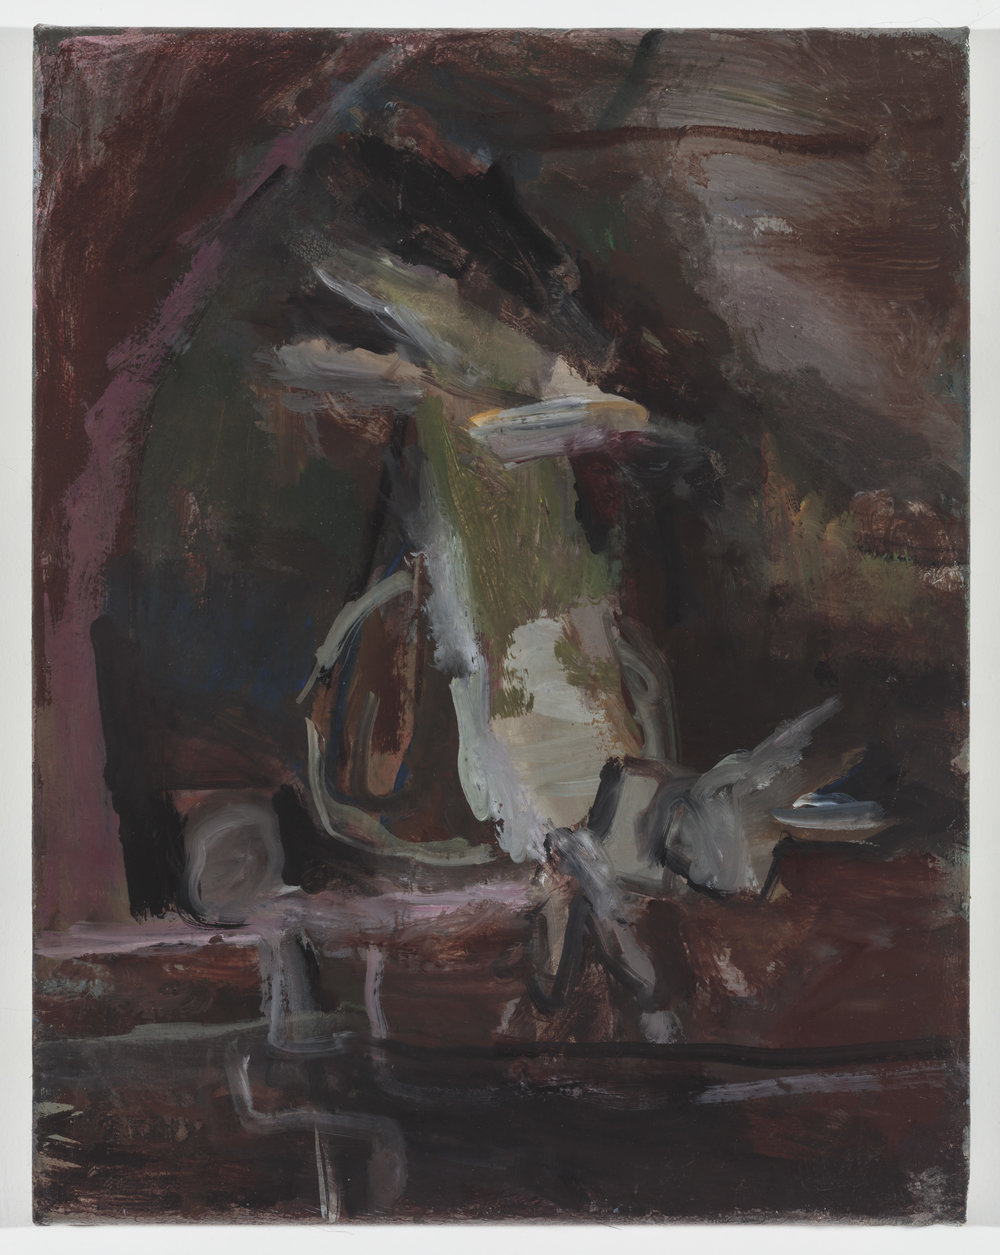 Dead Hare III (after Chardin)